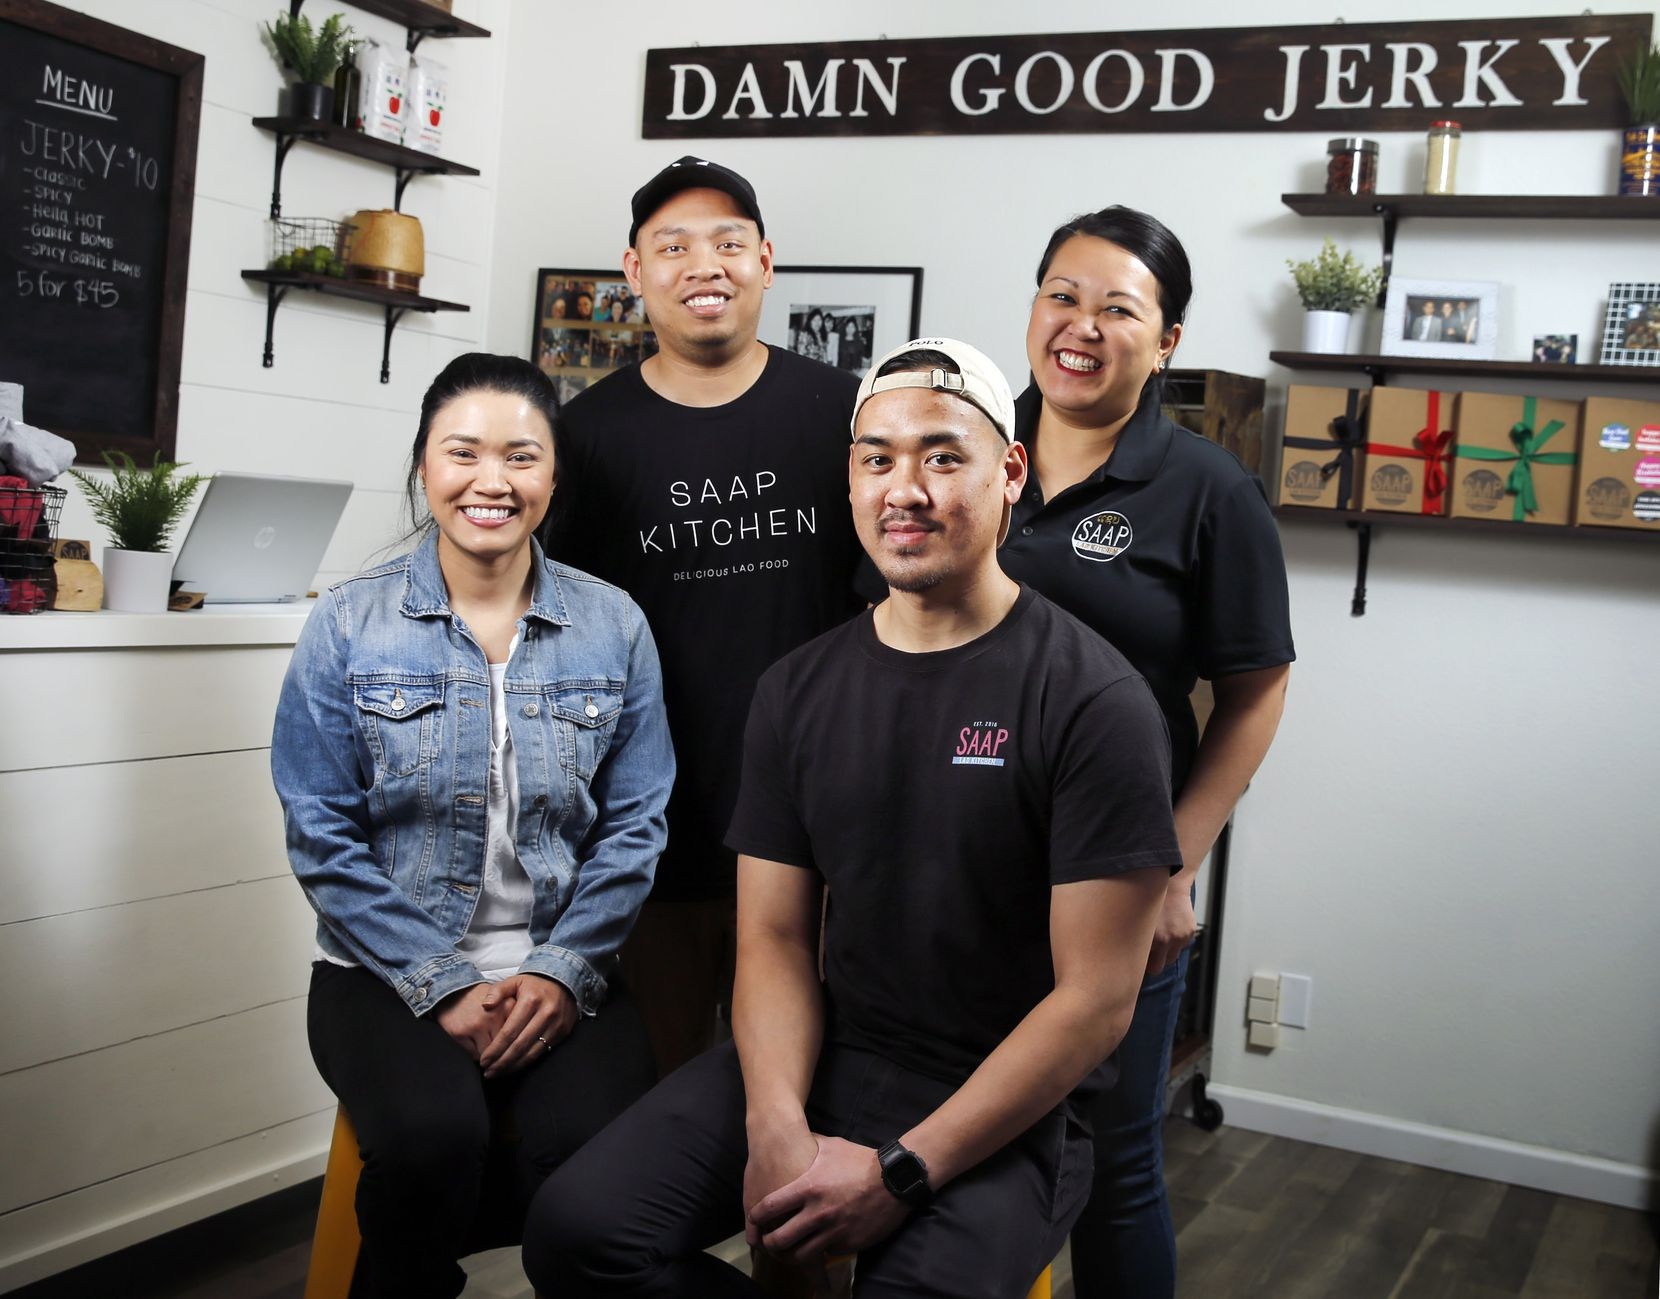 Co-founders (from left) Sandy Sichanh, Elson Douangdara, Frick Chanthorn and Kim Chanthorn pose at Saap Lao Kitchen, a family-owned, Laotian-style beef jerky company based in Bedford, Texas.